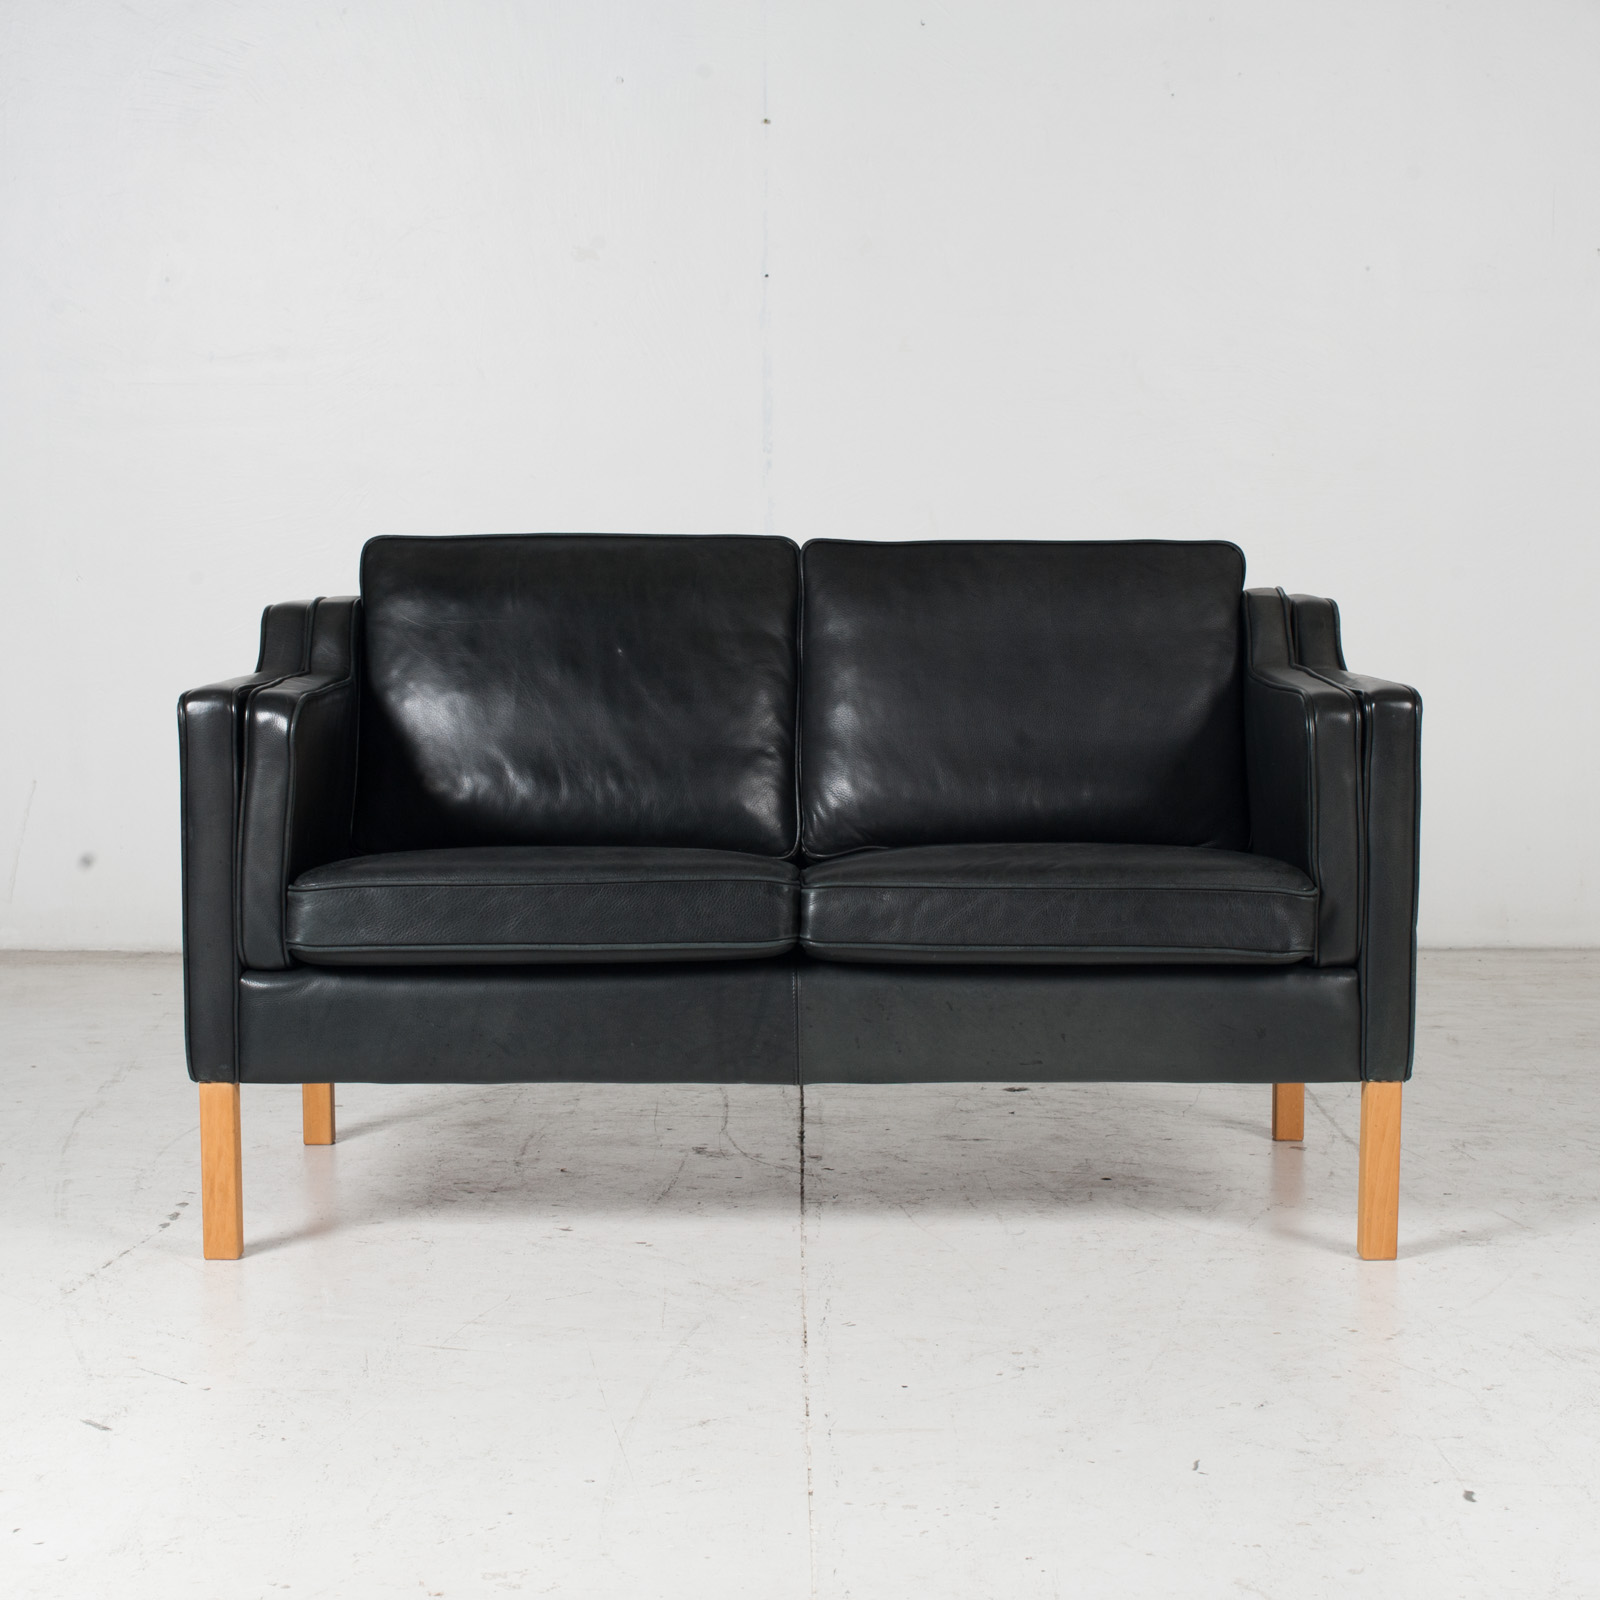 2 Seat Sofa By Stouby In Black Leather, 1960s, Denmark 1